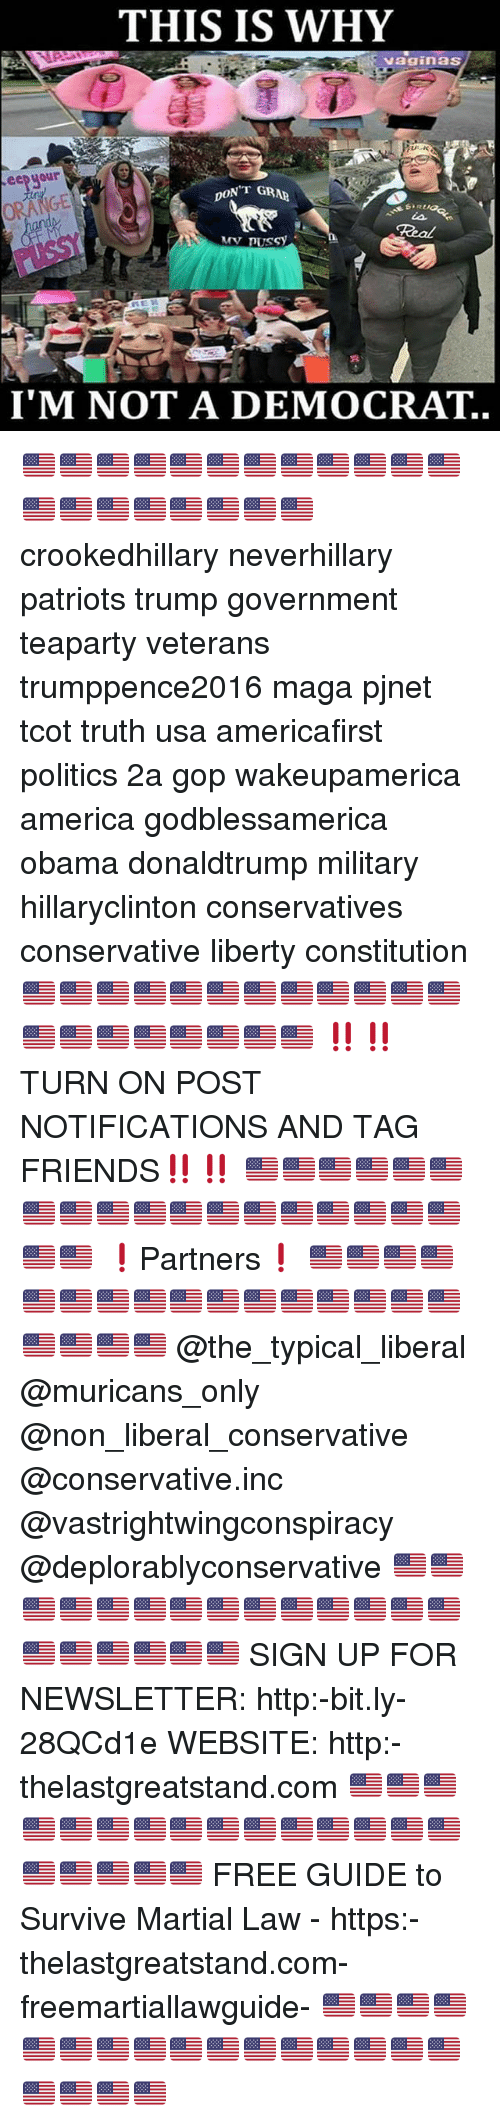 martial law: THIS IS WHY  vaginas  our  eepy  poNm GRAB  I'M NOT A DEMOCRAT. 🇺🇸🇺🇸🇺🇸🇺🇸🇺🇸🇺🇸🇺🇸🇺🇸🇺🇸🇺🇸🇺🇸🇺🇸🇺🇸🇺🇸🇺🇸🇺🇸🇺🇸🇺🇸🇺🇸🇺🇸 crookedhillary neverhillary patriots trump government teaparty veterans trumppence2016 maga pjnet tcot truth usa americafirst politics 2a gop wakeupamerica america godblessamerica obama donaldtrump military hillaryclinton conservatives conservative liberty constitution 🇺🇸🇺🇸🇺🇸🇺🇸🇺🇸🇺🇸🇺🇸🇺🇸🇺🇸🇺🇸🇺🇸🇺🇸🇺🇸🇺🇸🇺🇸🇺🇸🇺🇸🇺🇸🇺🇸🇺🇸 ‼️‼️TURN ON POST NOTIFICATIONS AND TAG FRIENDS‼️‼️ 🇺🇸🇺🇸🇺🇸🇺🇸🇺🇸🇺🇸🇺🇸🇺🇸🇺🇸🇺🇸🇺🇸🇺🇸🇺🇸🇺🇸🇺🇸🇺🇸🇺🇸🇺🇸🇺🇸🇺🇸 ❗️Partners❗️ 🇺🇸🇺🇸🇺🇸🇺🇸🇺🇸🇺🇸🇺🇸🇺🇸🇺🇸🇺🇸🇺🇸🇺🇸🇺🇸🇺🇸🇺🇸🇺🇸🇺🇸🇺🇸🇺🇸🇺🇸 @the_typical_liberal @muricans_only @non_liberal_conservative @conservative.inc @vastrightwingconspiracy @deplorablyconservative 🇺🇸🇺🇸🇺🇸🇺🇸🇺🇸🇺🇸🇺🇸🇺🇸🇺🇸🇺🇸🇺🇸🇺🇸🇺🇸🇺🇸🇺🇸🇺🇸🇺🇸🇺🇸🇺🇸🇺🇸 SIGN UP FOR NEWSLETTER: http:-bit.ly-28QCd1e WEBSITE: http:-thelastgreatstand.com 🇺🇸🇺🇸🇺🇸🇺🇸🇺🇸🇺🇸🇺🇸🇺🇸🇺🇸🇺🇸🇺🇸🇺🇸🇺🇸🇺🇸🇺🇸🇺🇸🇺🇸🇺🇸🇺🇸🇺🇸 FREE GUIDE to Survive Martial Law - https:-thelastgreatstand.com-freemartiallawguide- 🇺🇸🇺🇸🇺🇸🇺🇸🇺🇸🇺🇸🇺🇸🇺🇸🇺🇸🇺🇸🇺🇸🇺🇸🇺🇸🇺🇸🇺🇸🇺🇸🇺🇸🇺🇸🇺🇸🇺🇸